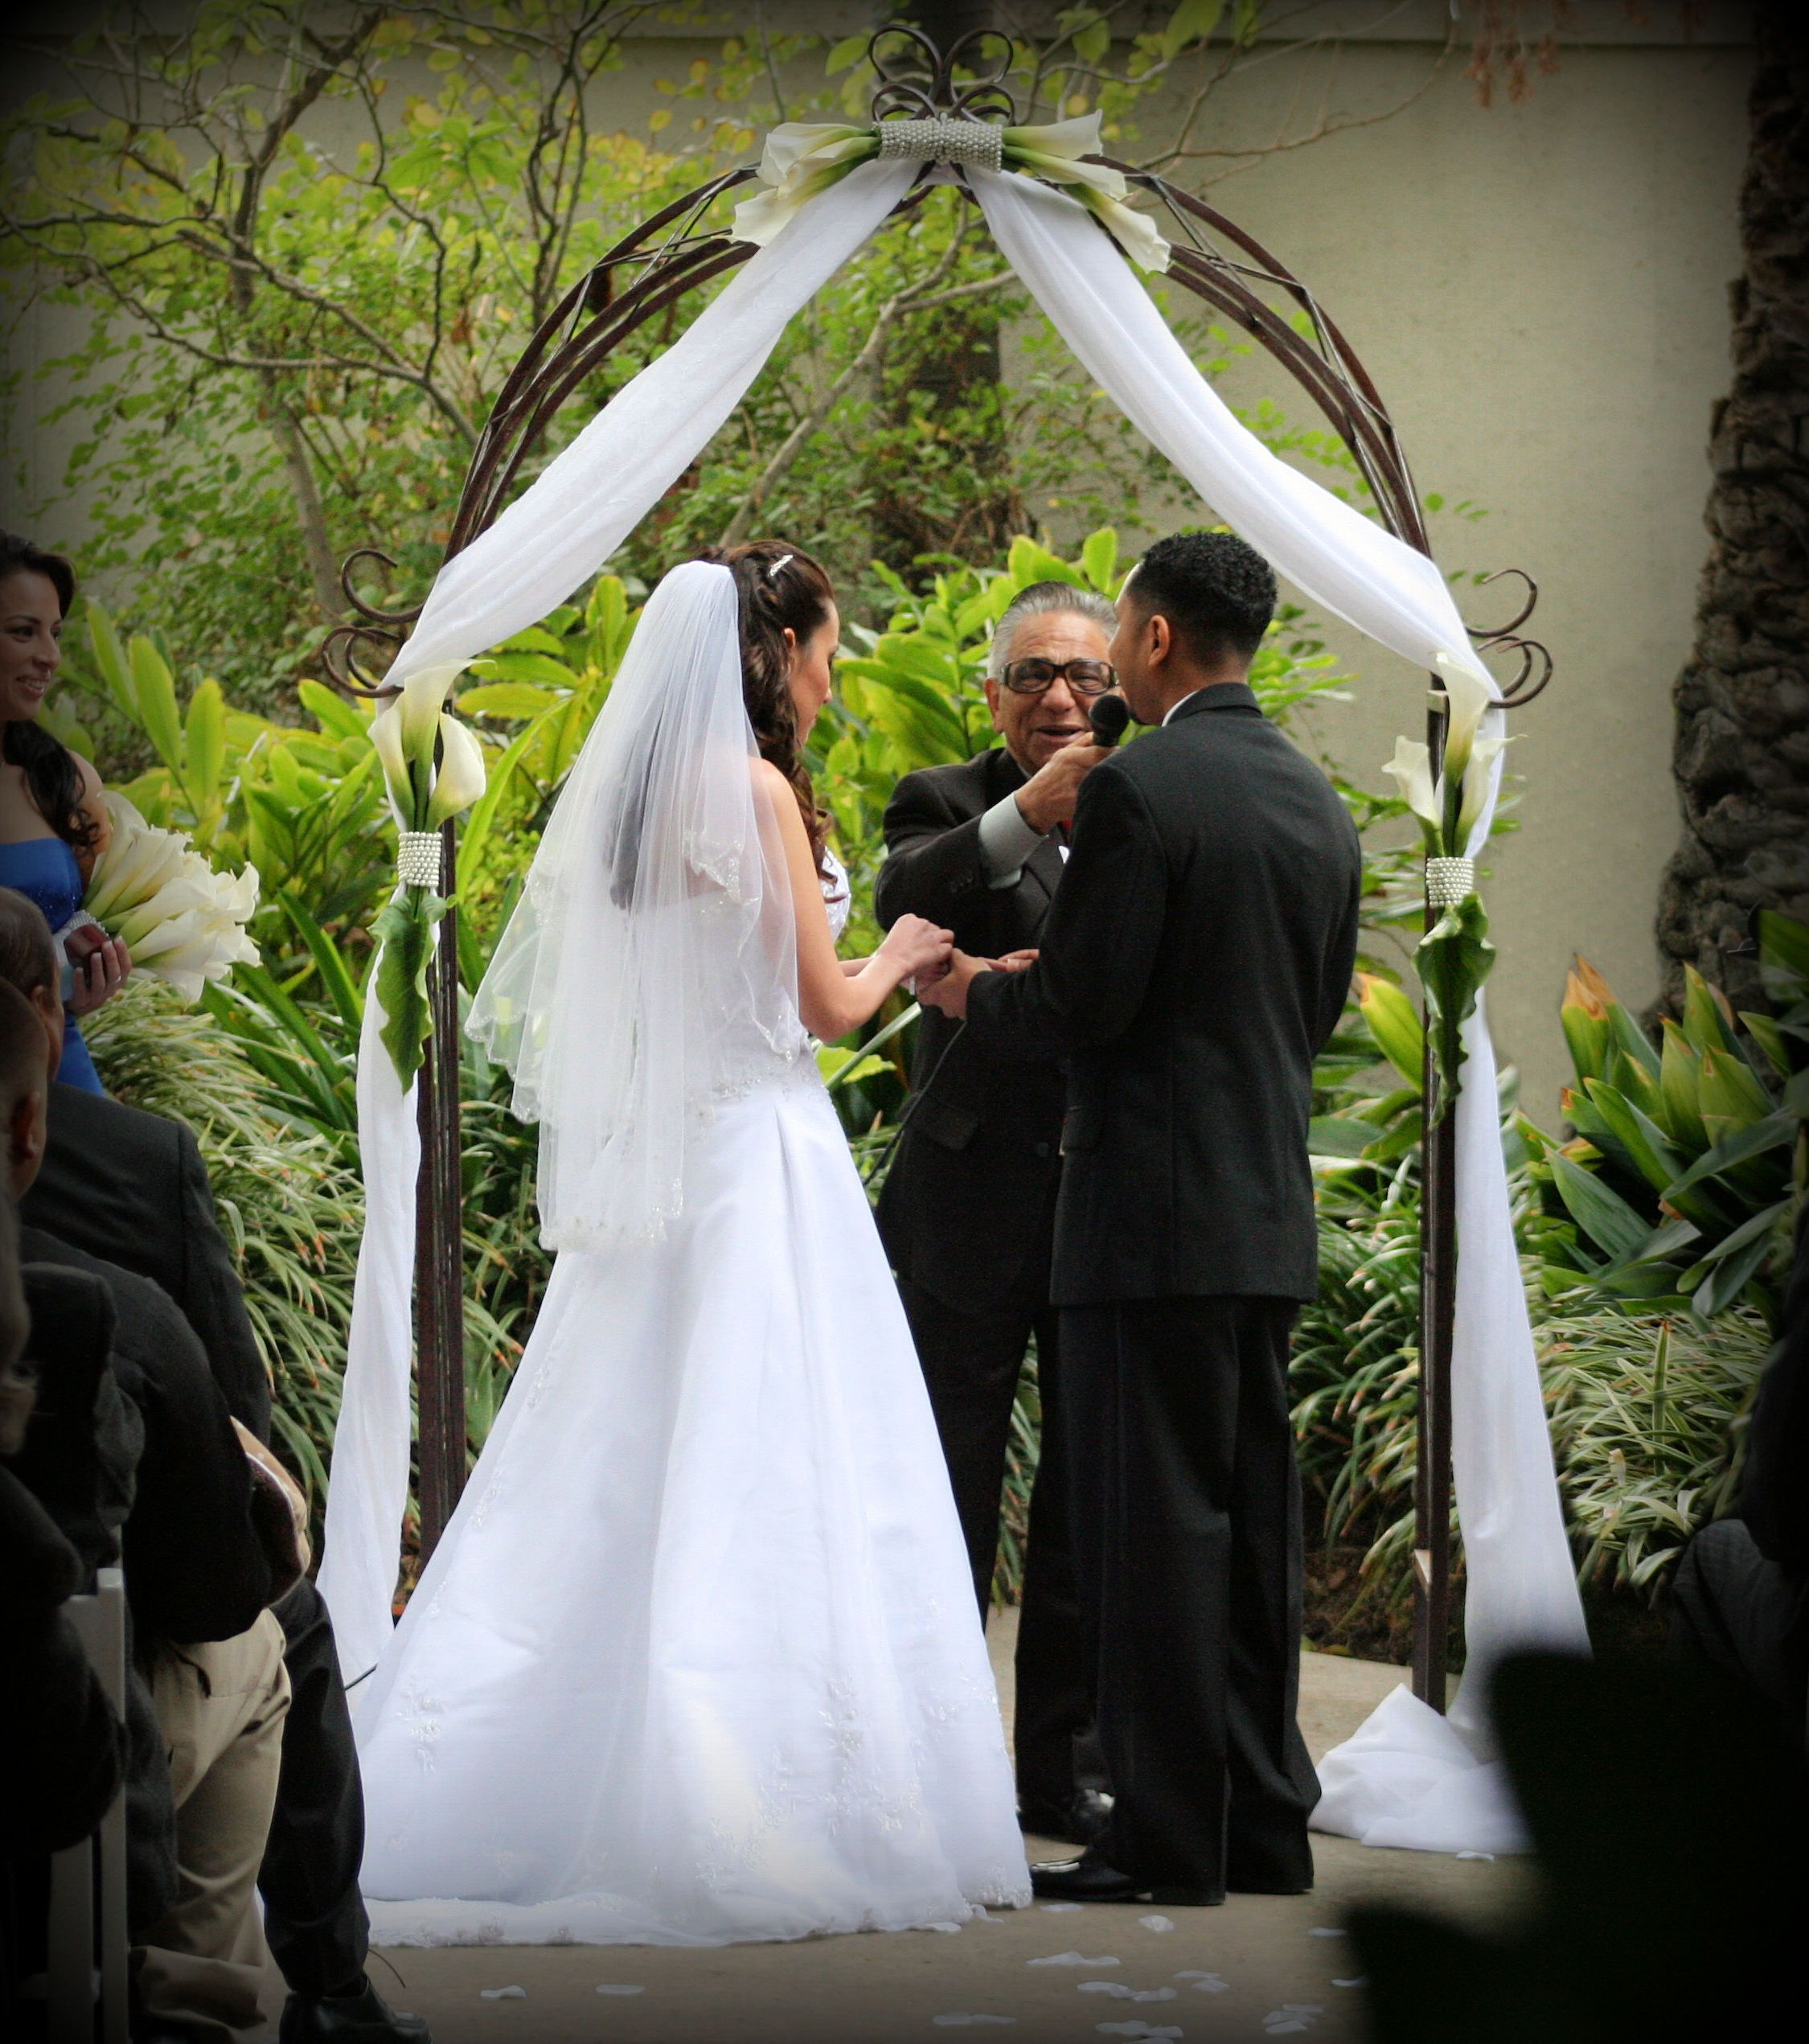 Wedding Altar Rental Houston: Wrought Iron Garden Wedding Arch Rentals By Arc De Belle